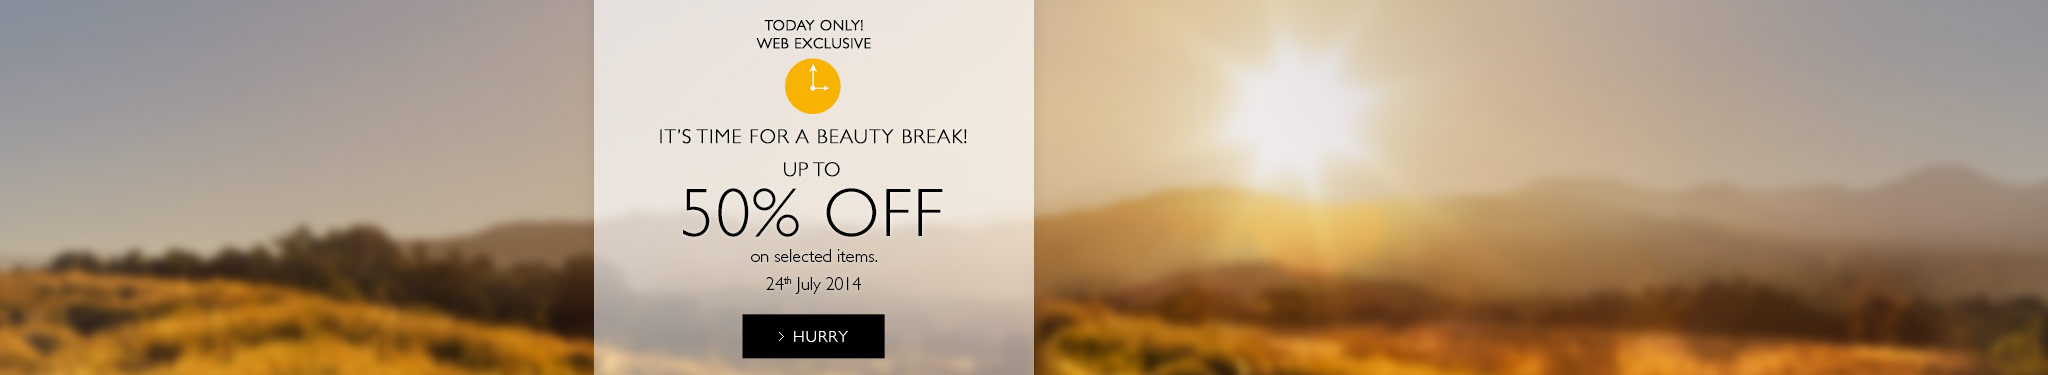 Beauty Break Flash Sale